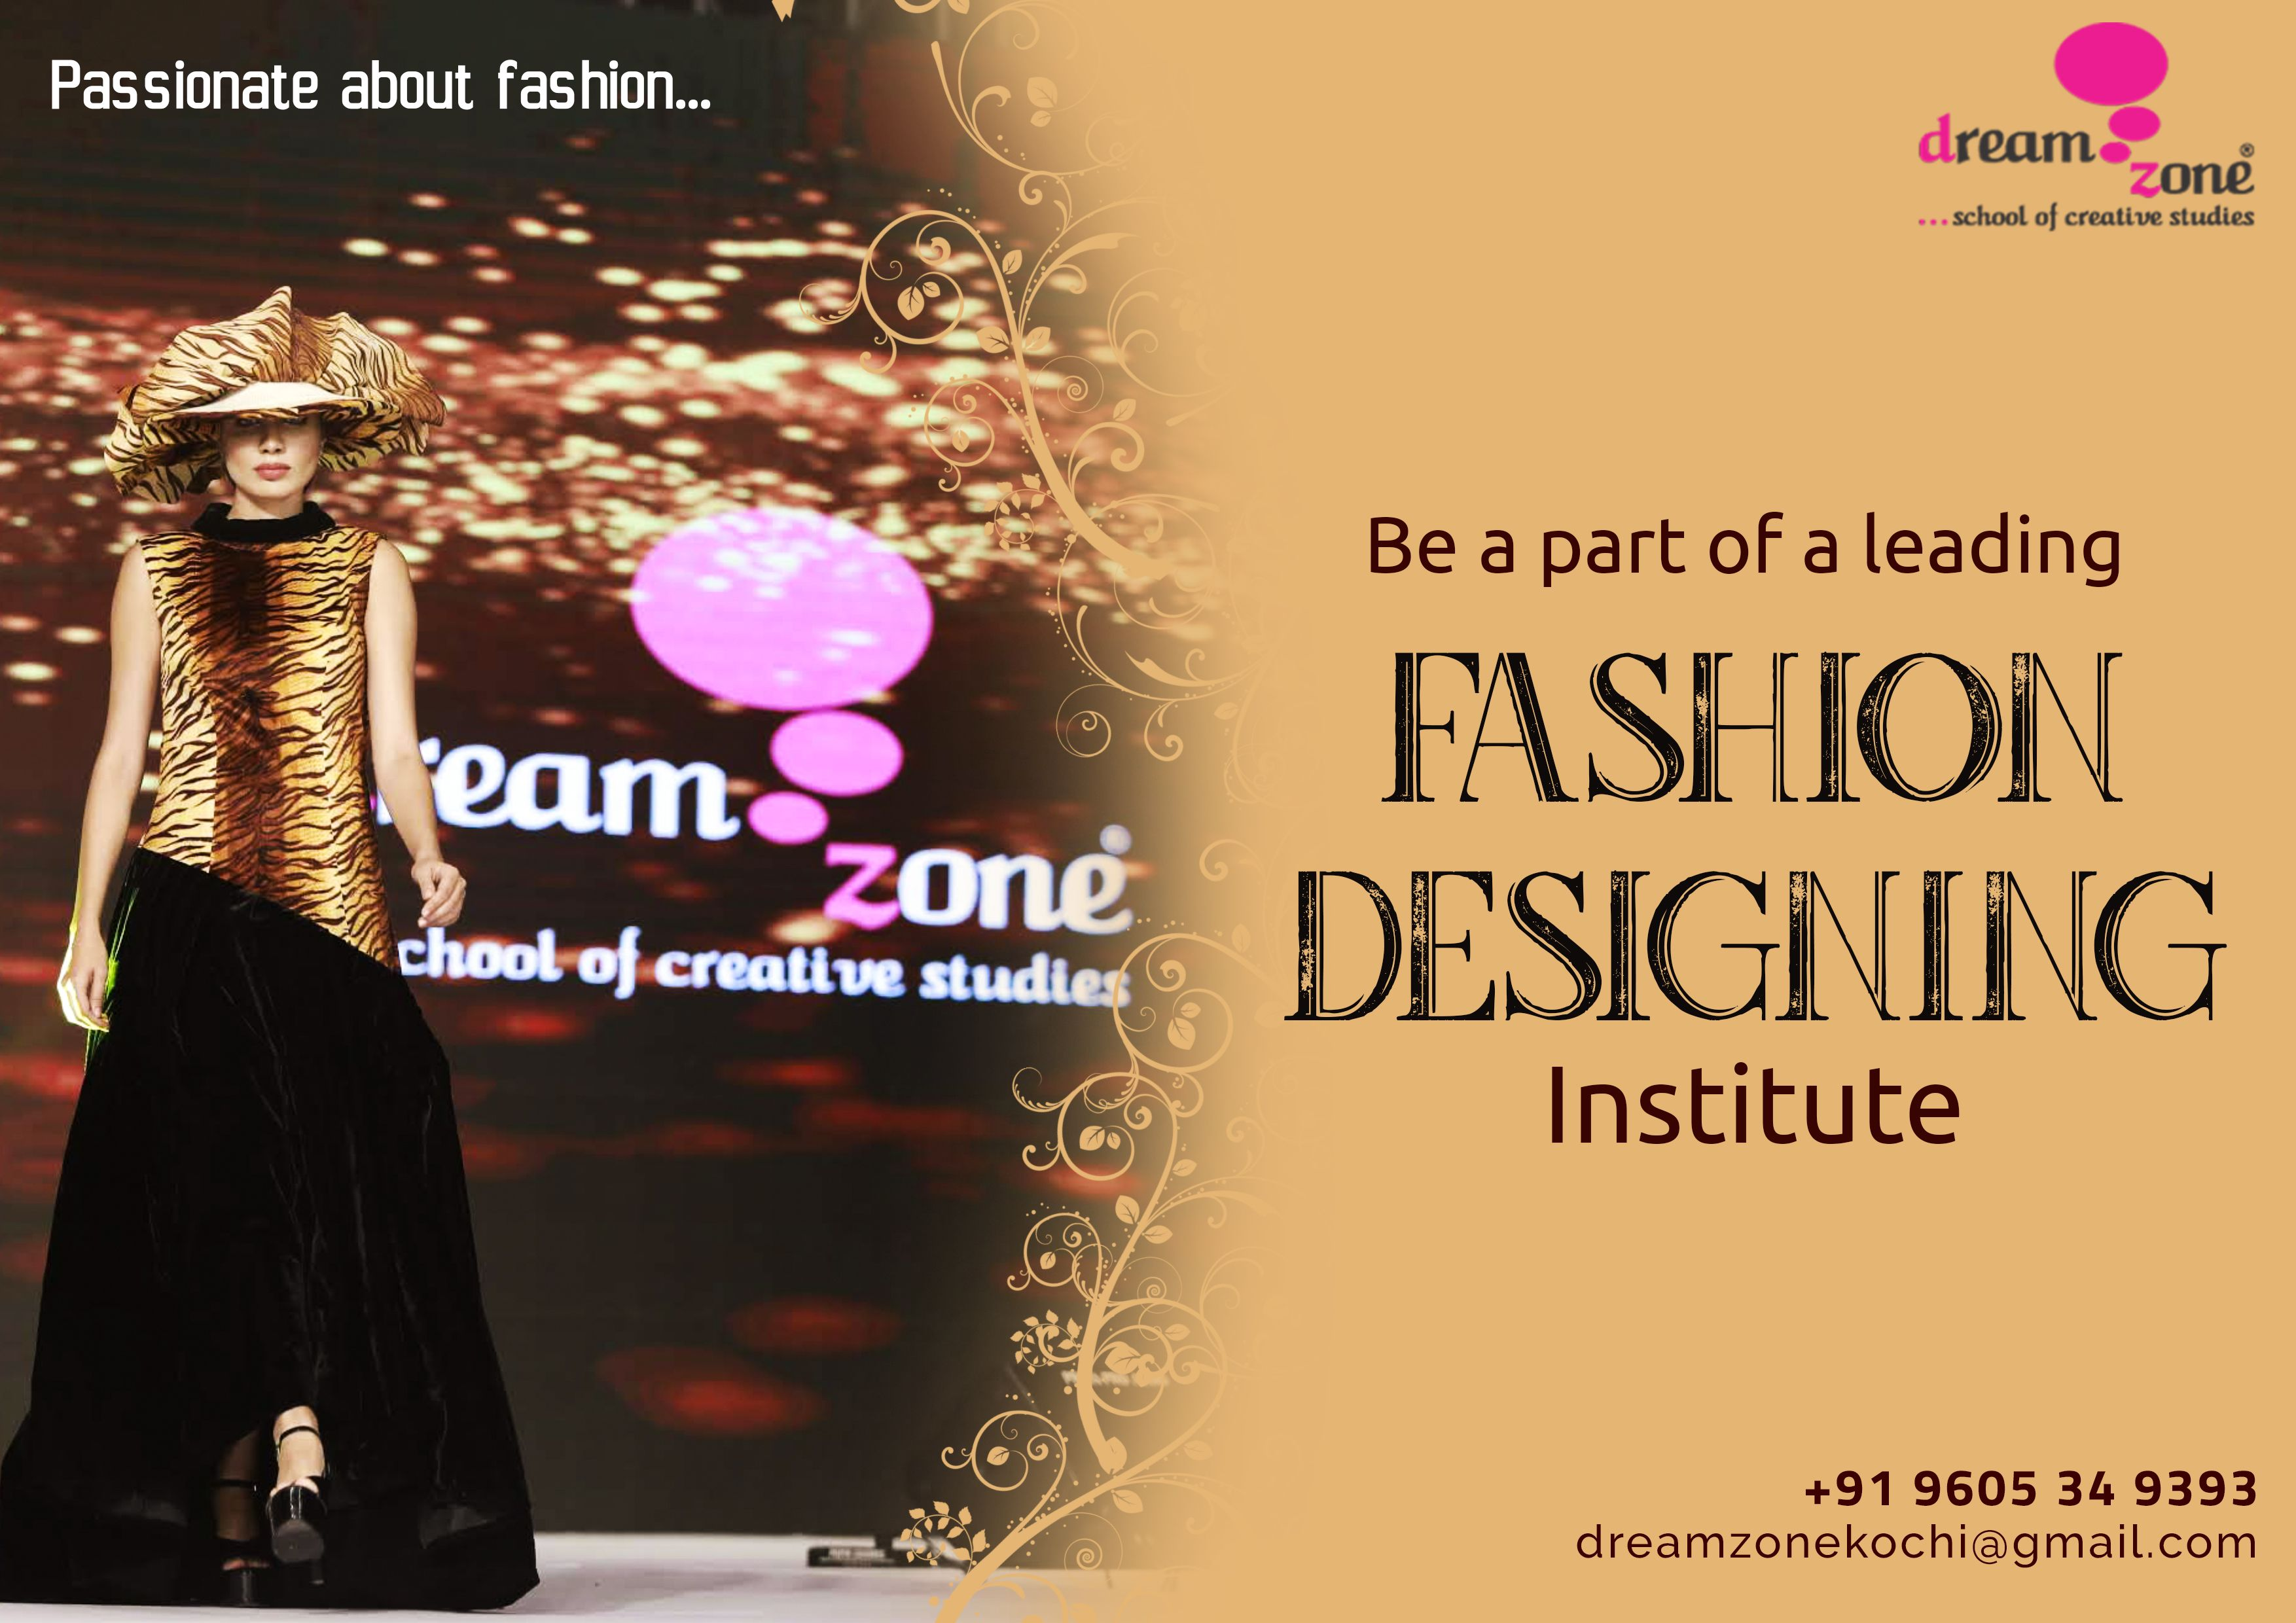 Build A Career In Fashion Designing From Dreamzone We Train Future Professionals To Create Original Career In Fashion Designing Graphic Design Course Design